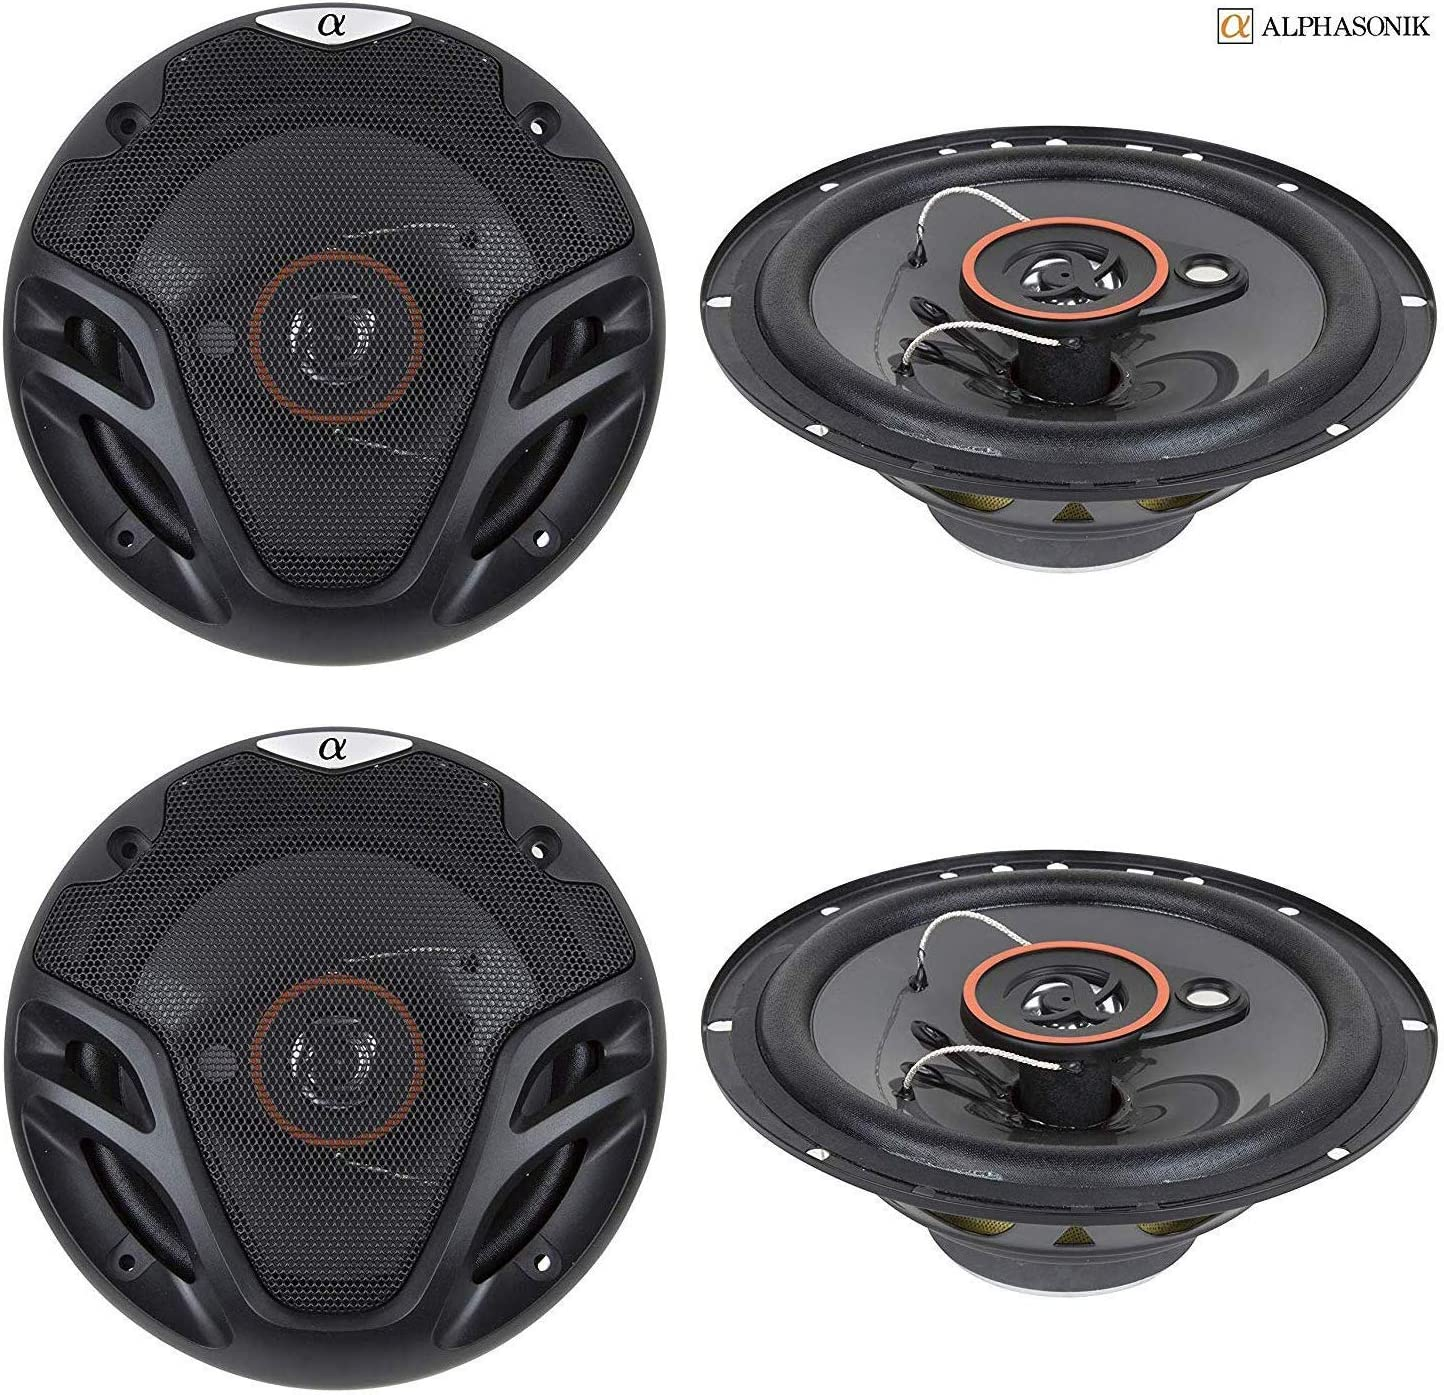 Alphasonik AS26 6.5 inch 350 Watts Max 3-Way Car Audio Full Range Coaxial Speakers with Universal Mounting Holes for Easy Installation and Grills Included 4 New 2 Pairs